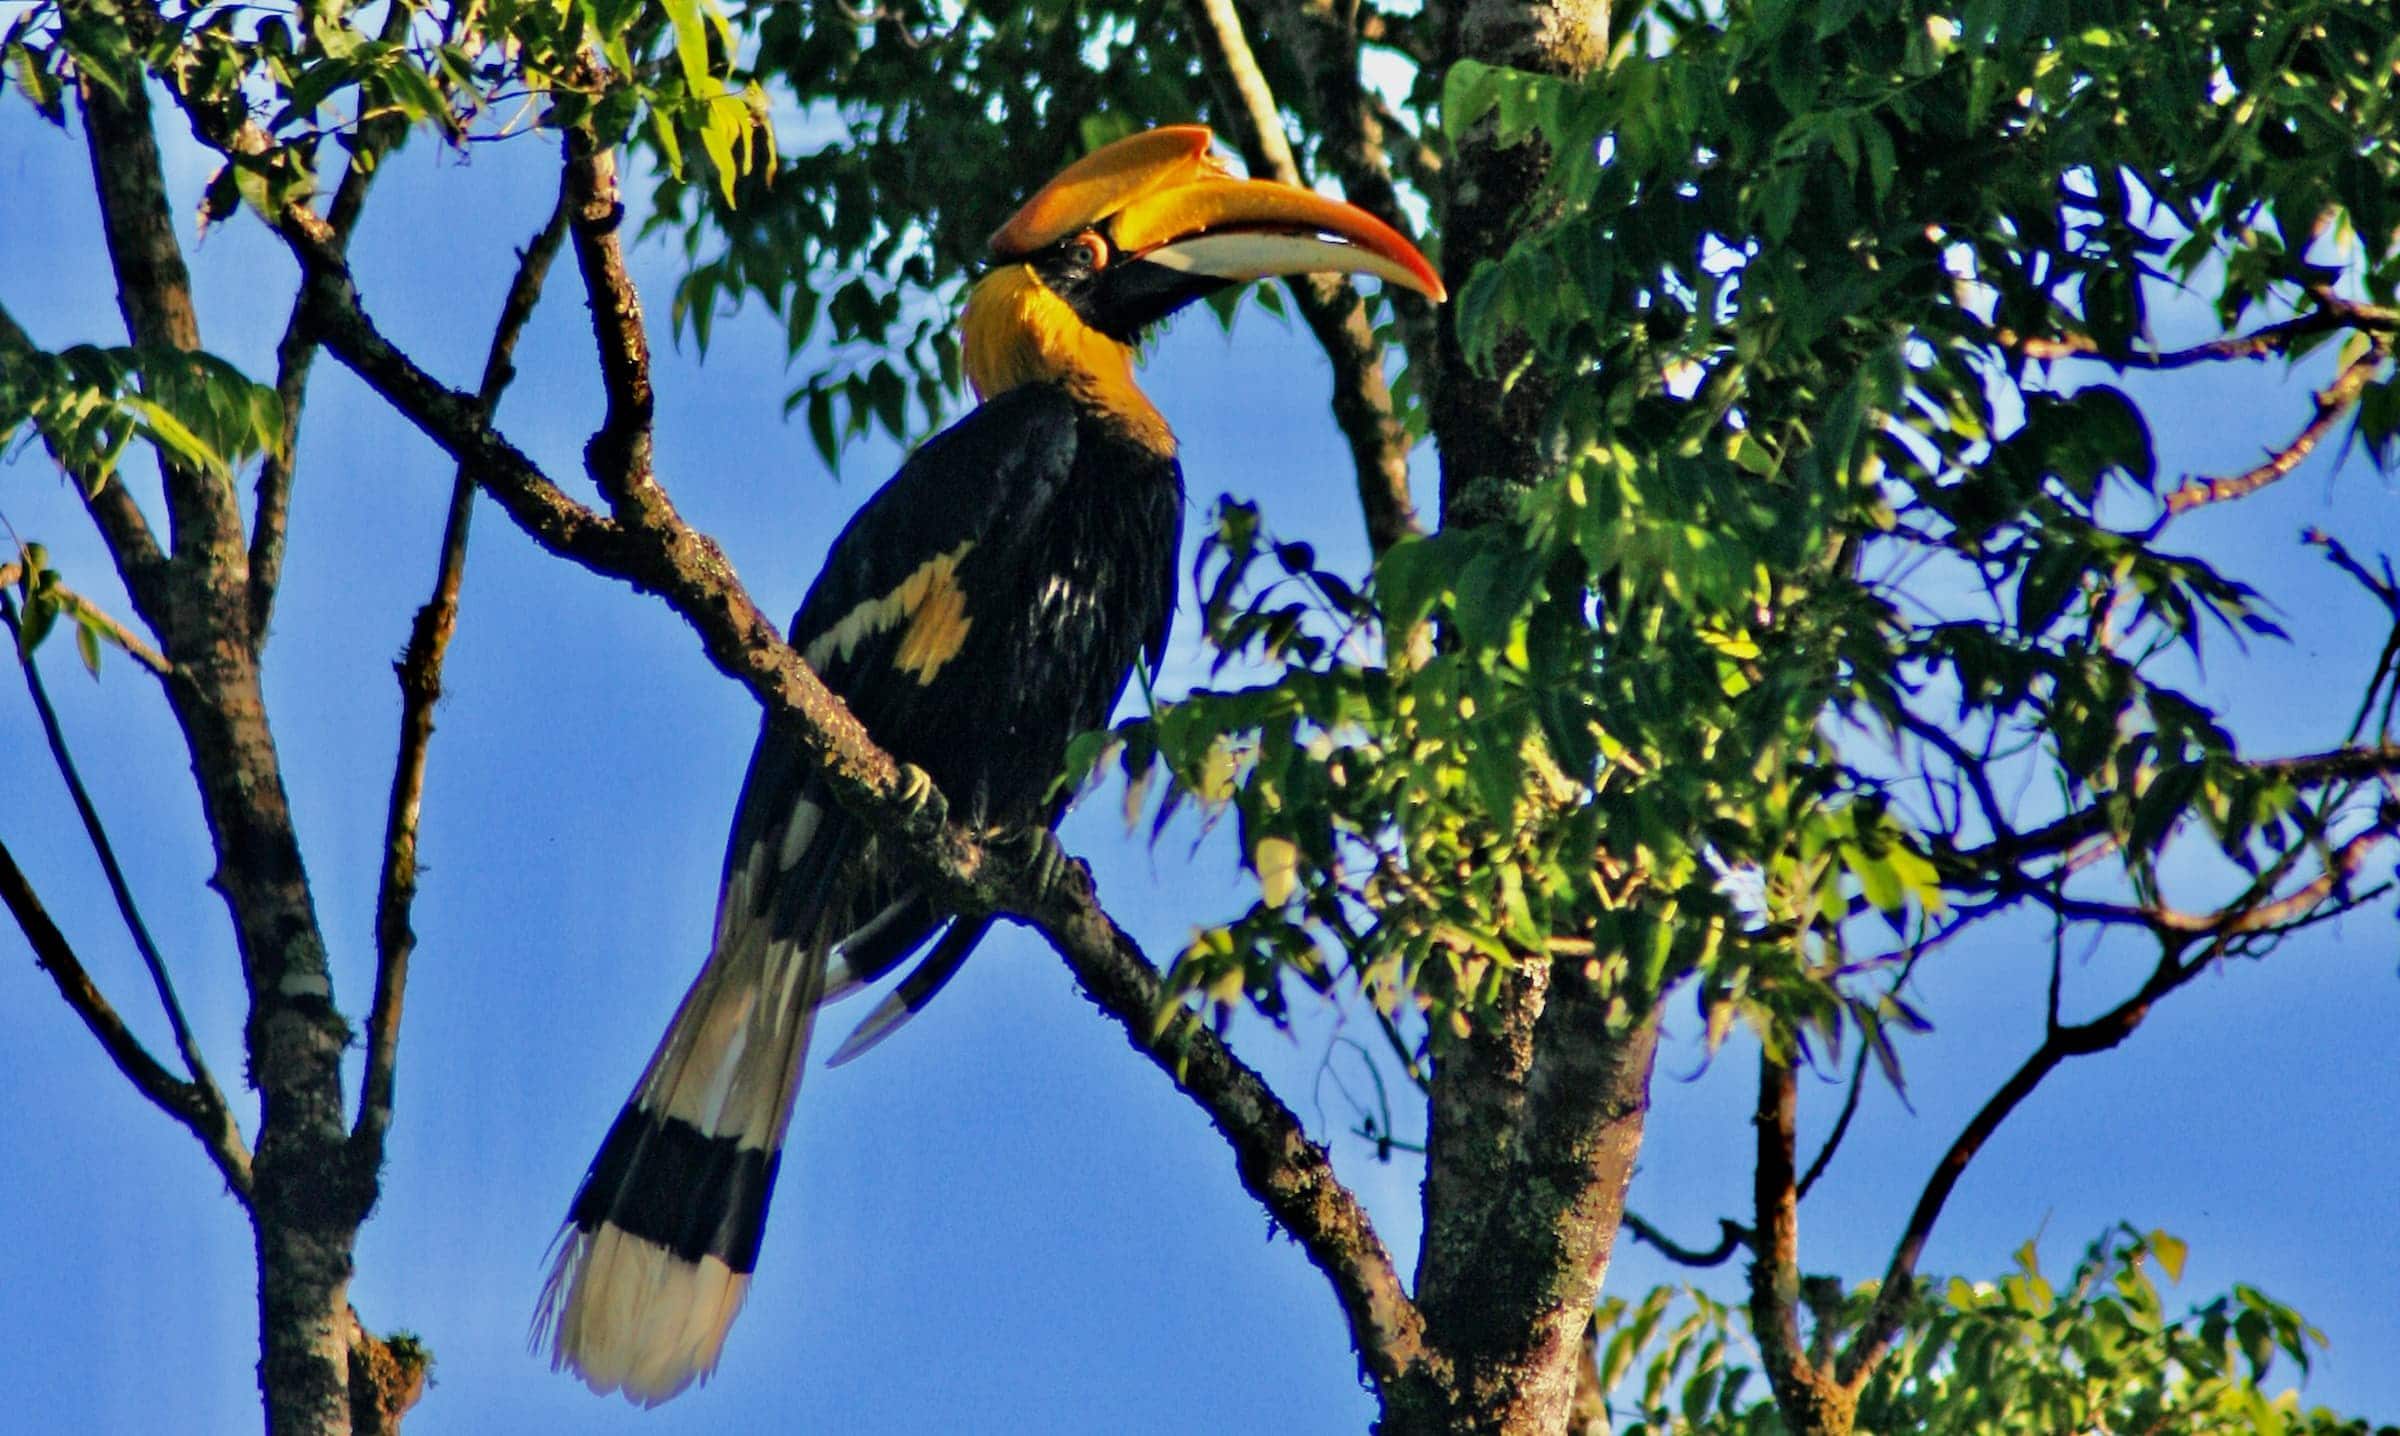 Great Indian Hornbill on a branch in the canopy of a forest with blue sky as background